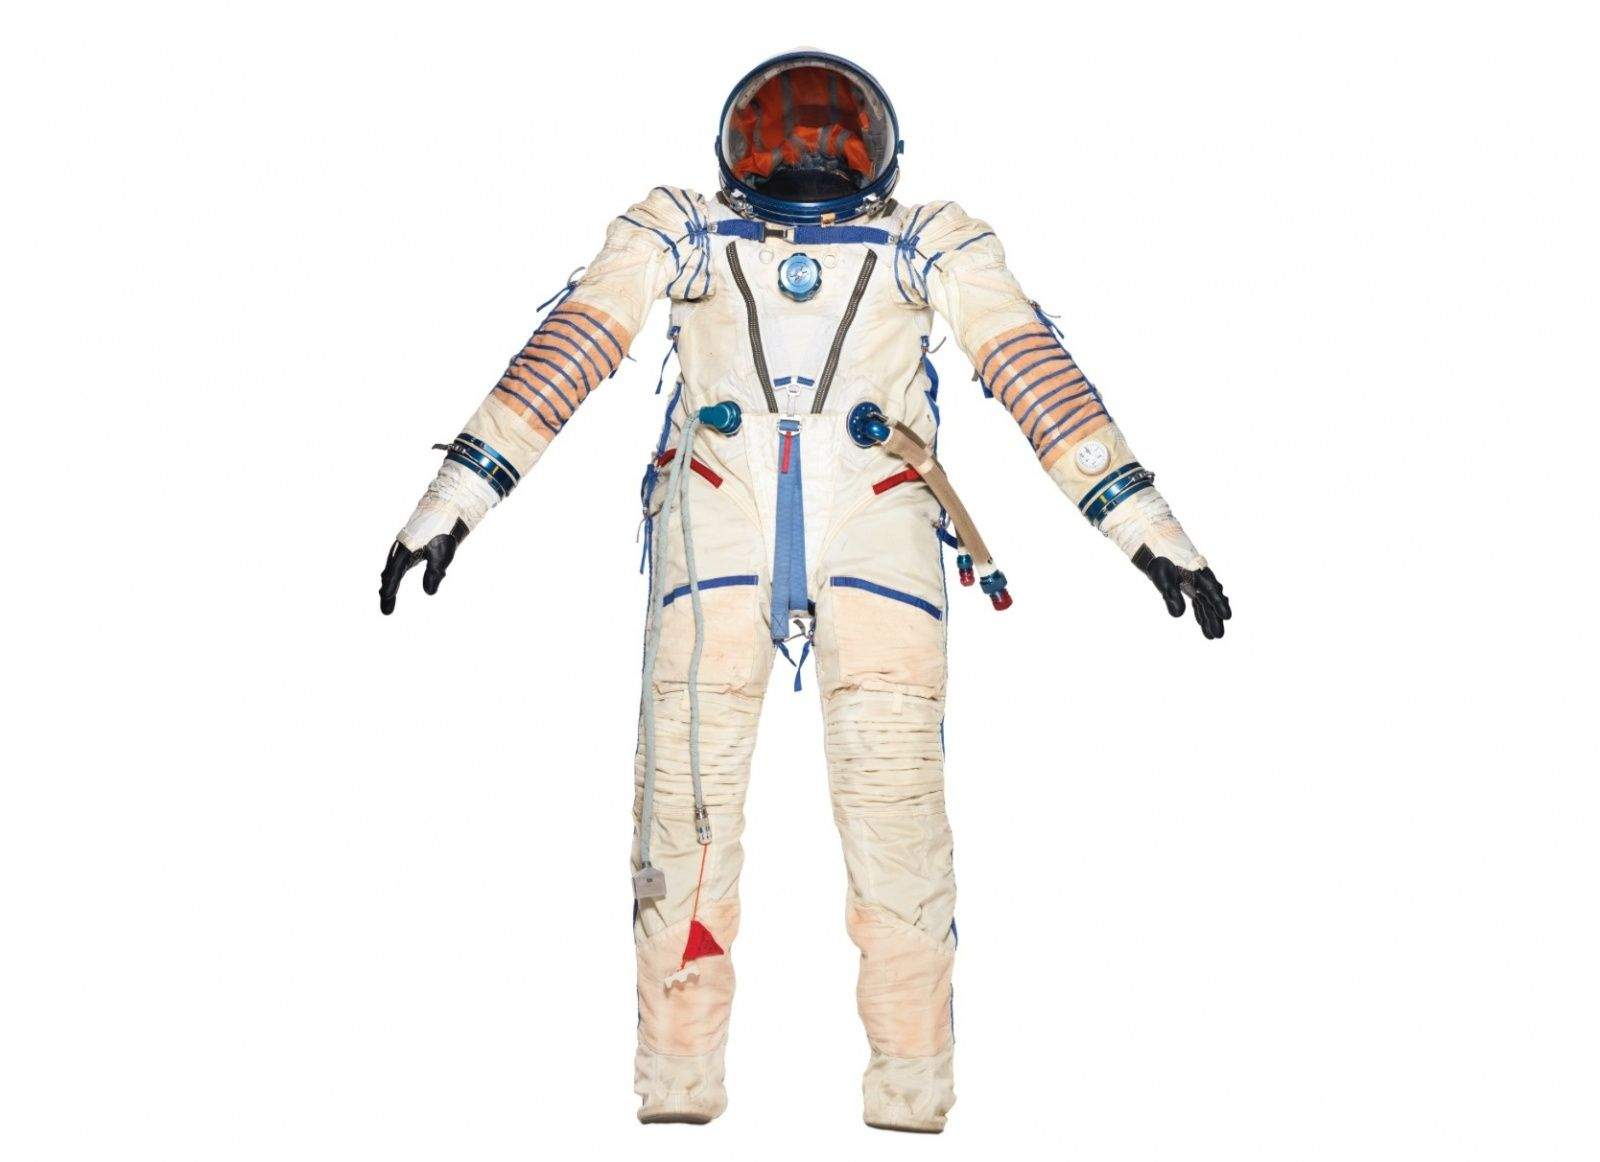 What would a Jony Ive spacesuit look like? Photo: Sotheby's